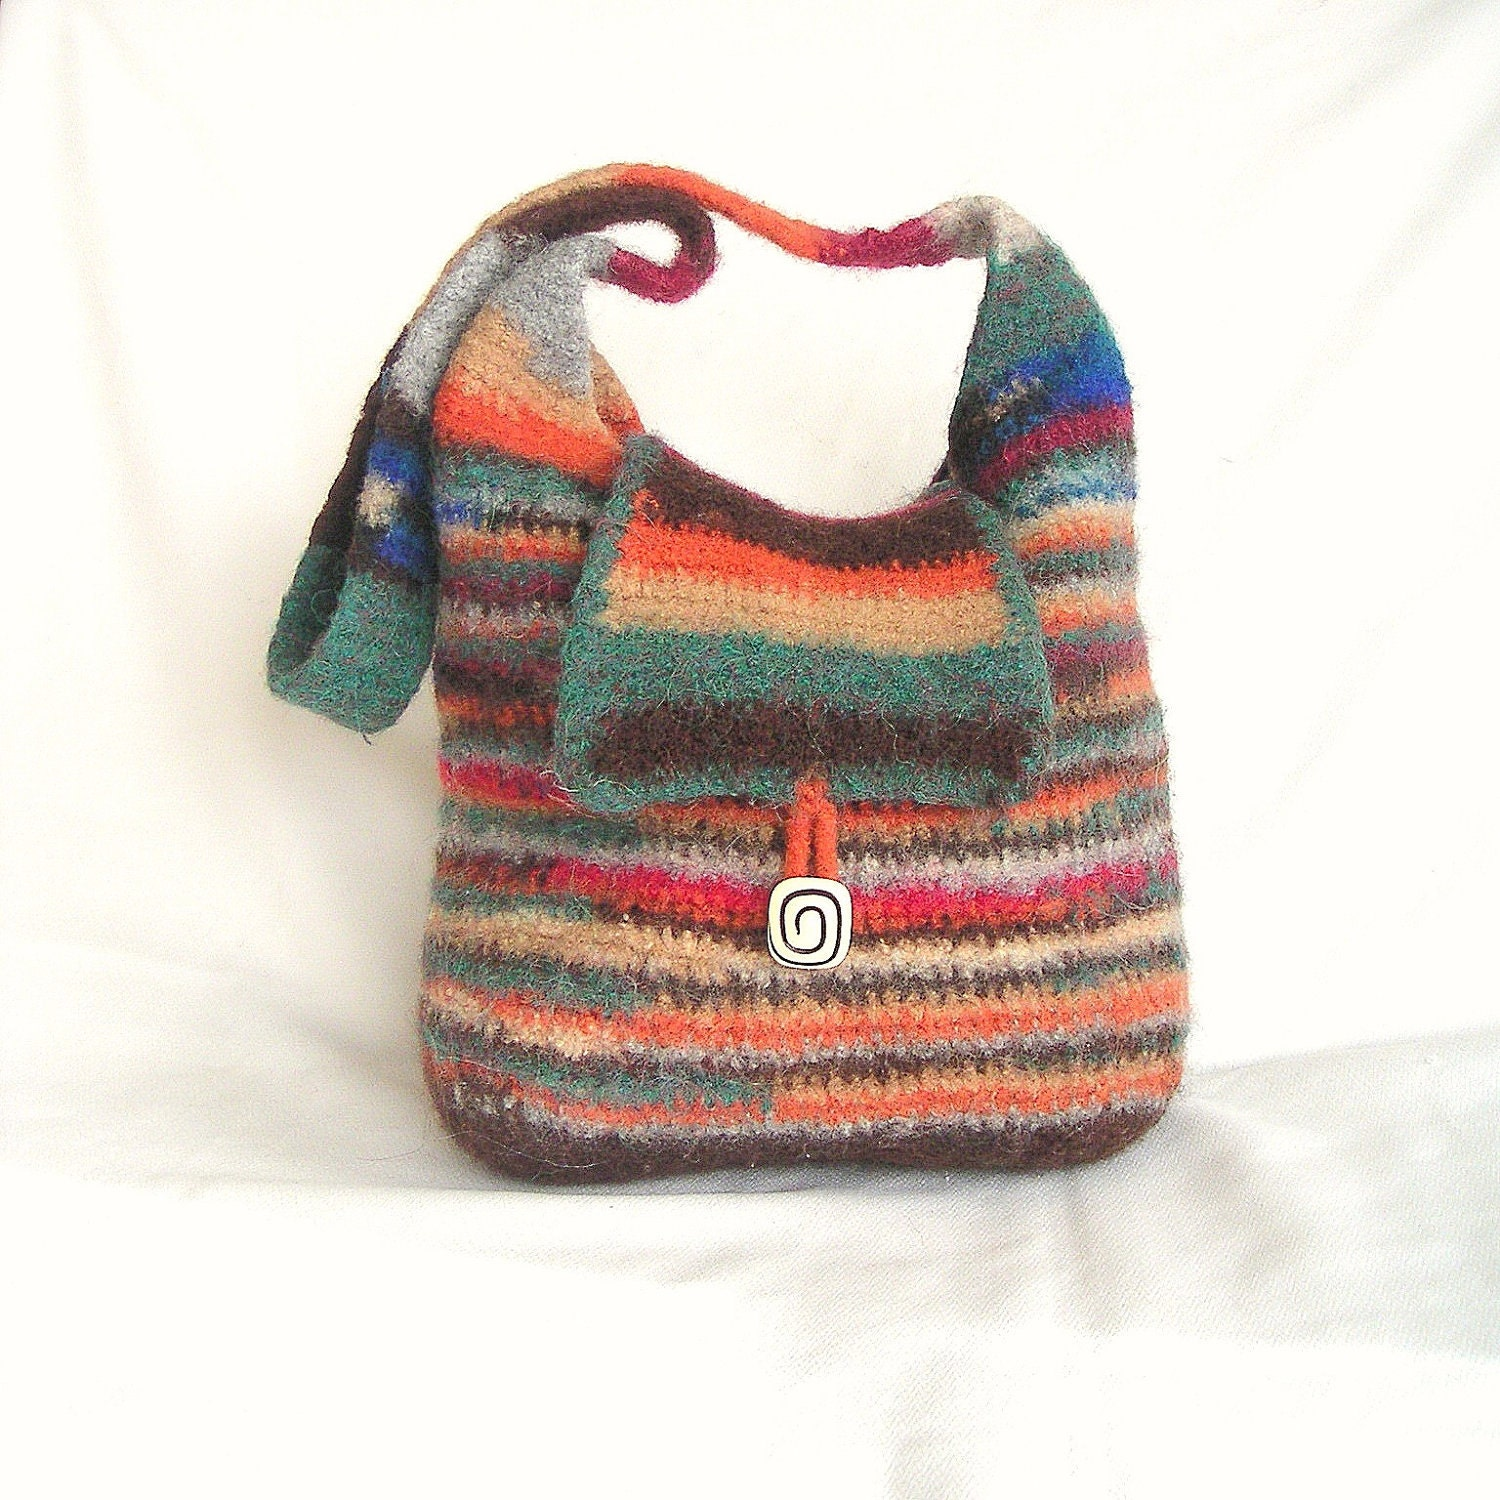 Crochet Felted Tote Bag Pattern : Mix Color Felted Bag Crochet Pattern by GraceKnittingPattern